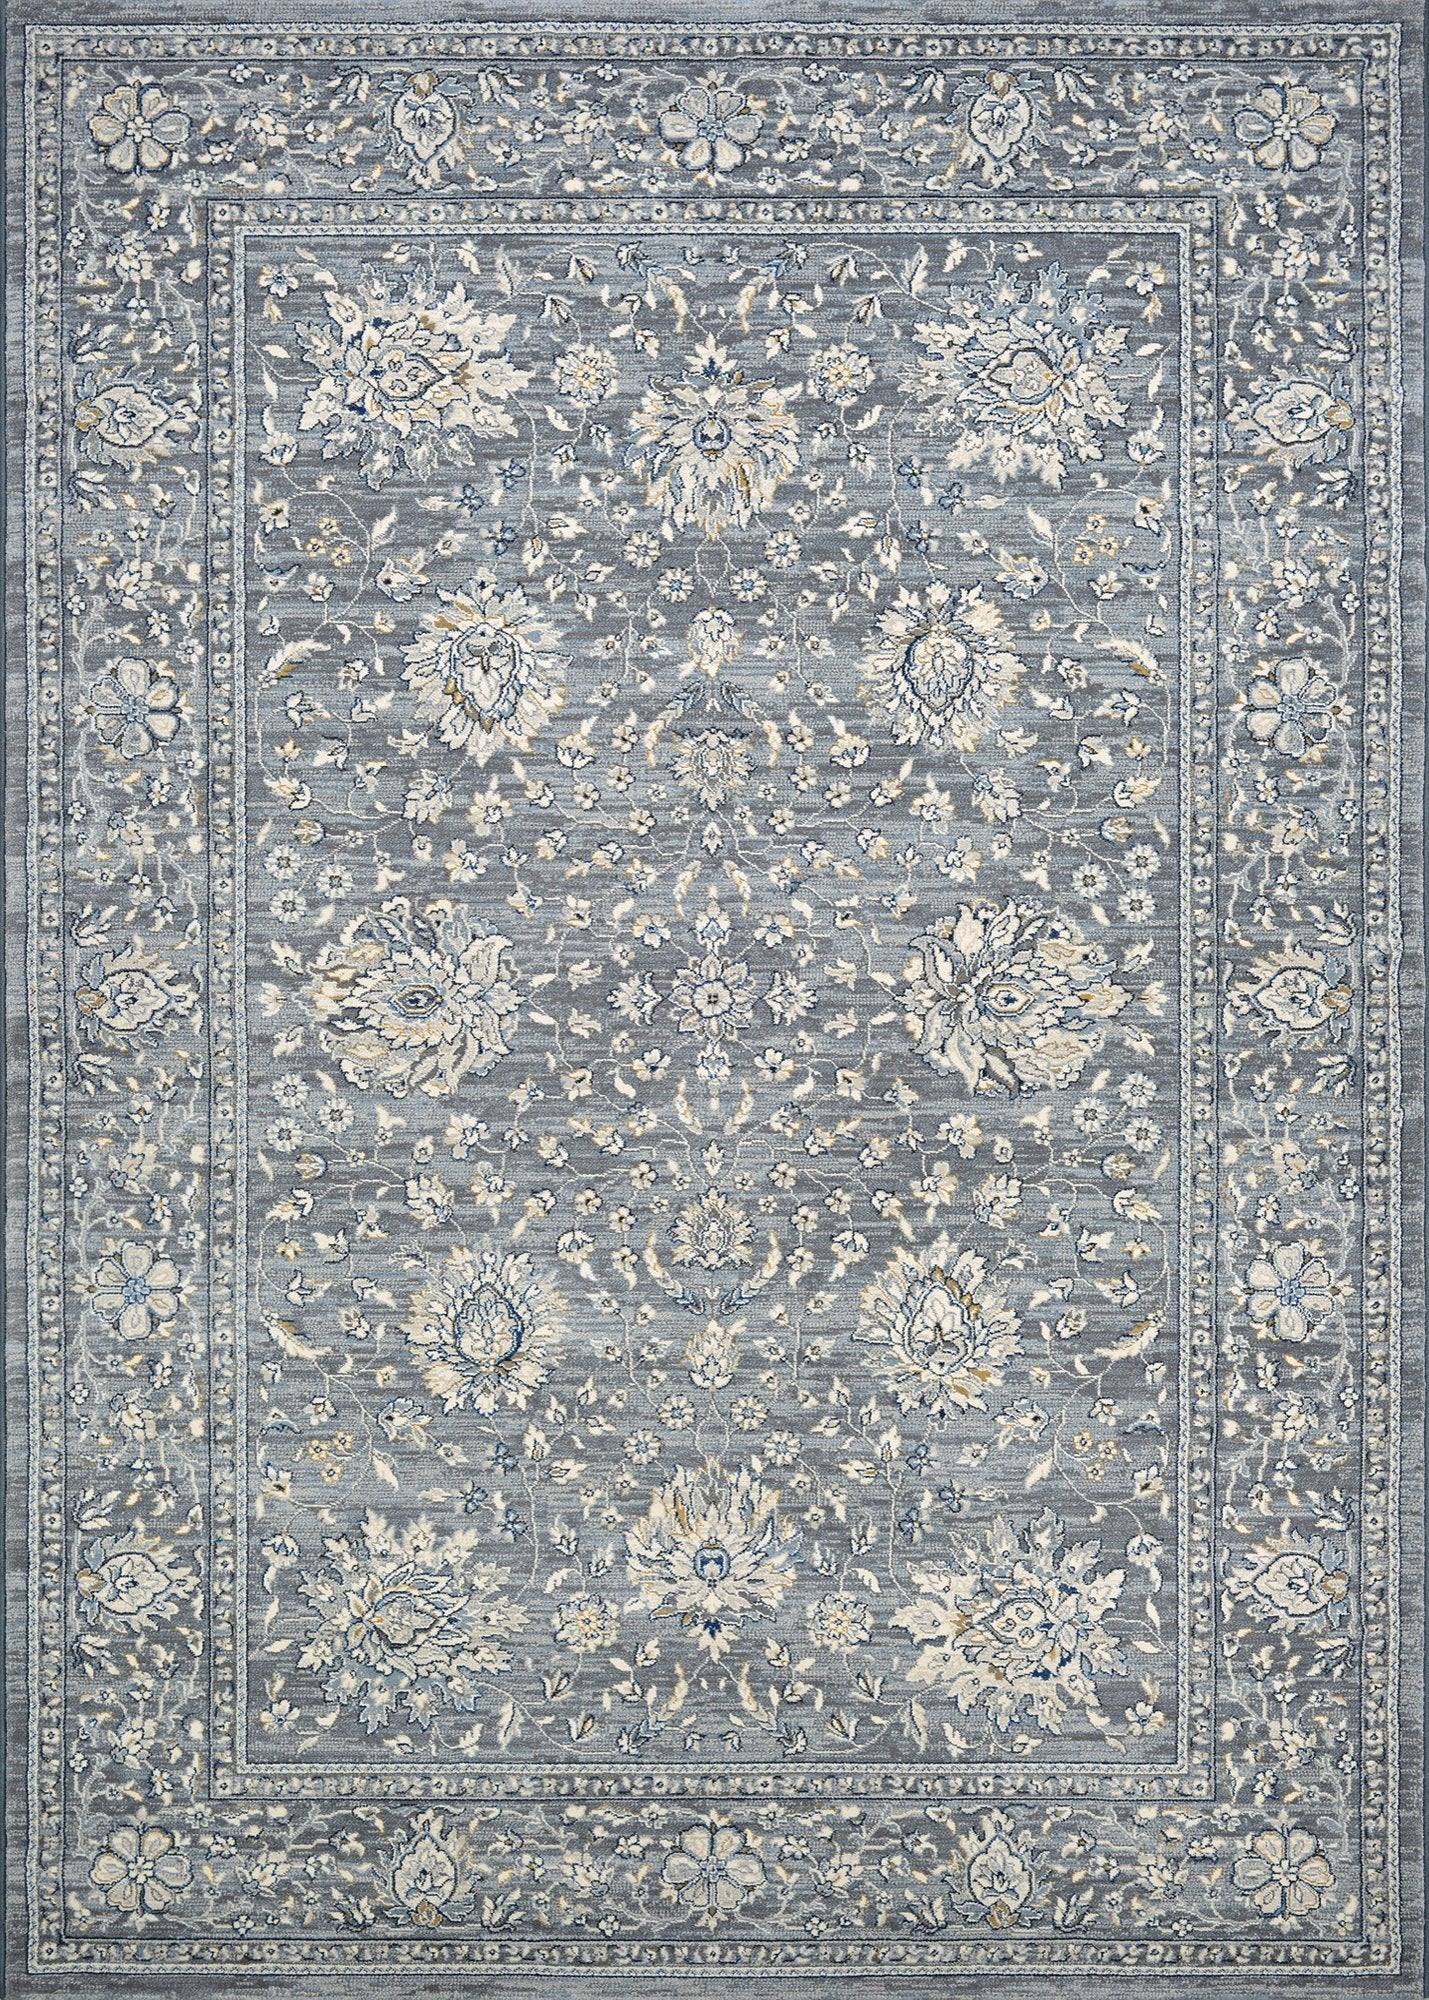 Couristan Area Rugs Sultan Treasures Area Rugs 7141-5656 Slate Grey 7 Sizes 100% Poly Belgium